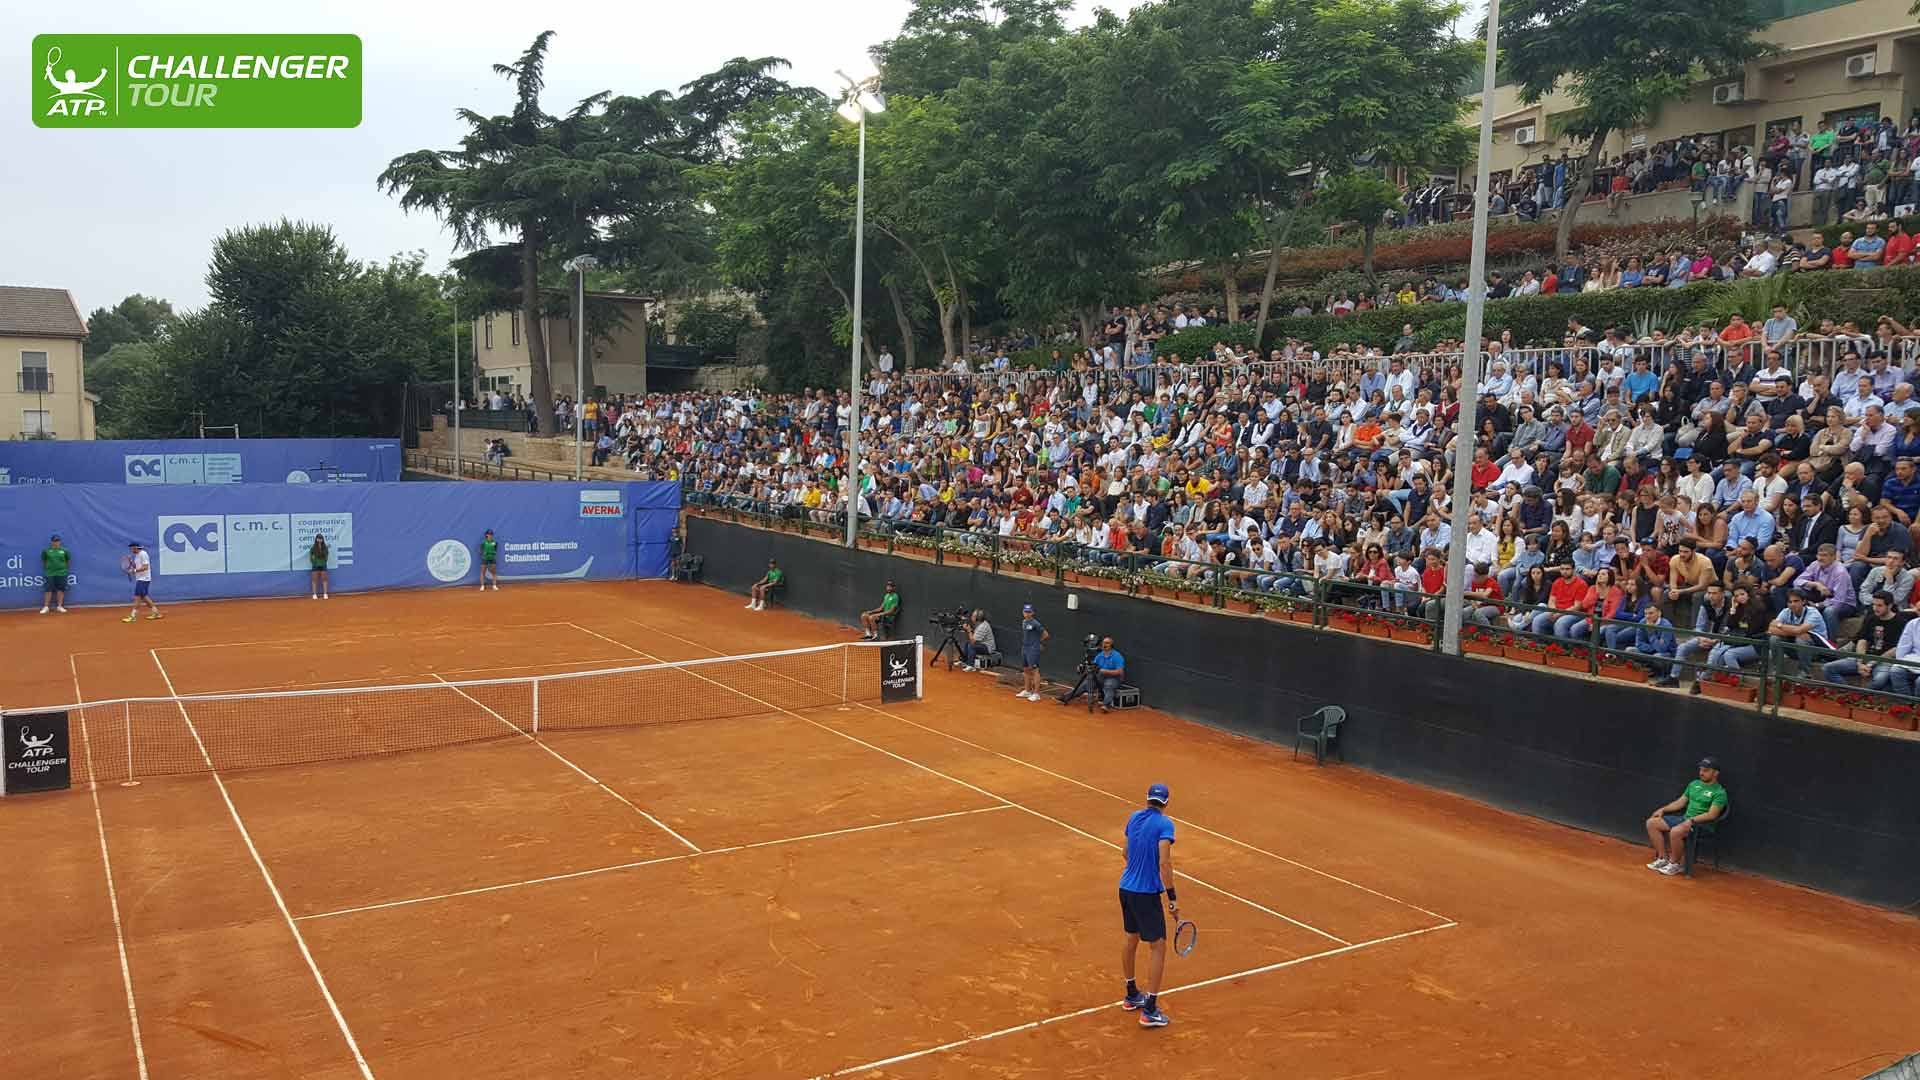 Packed crowds watch the matches in Caltanissetta.